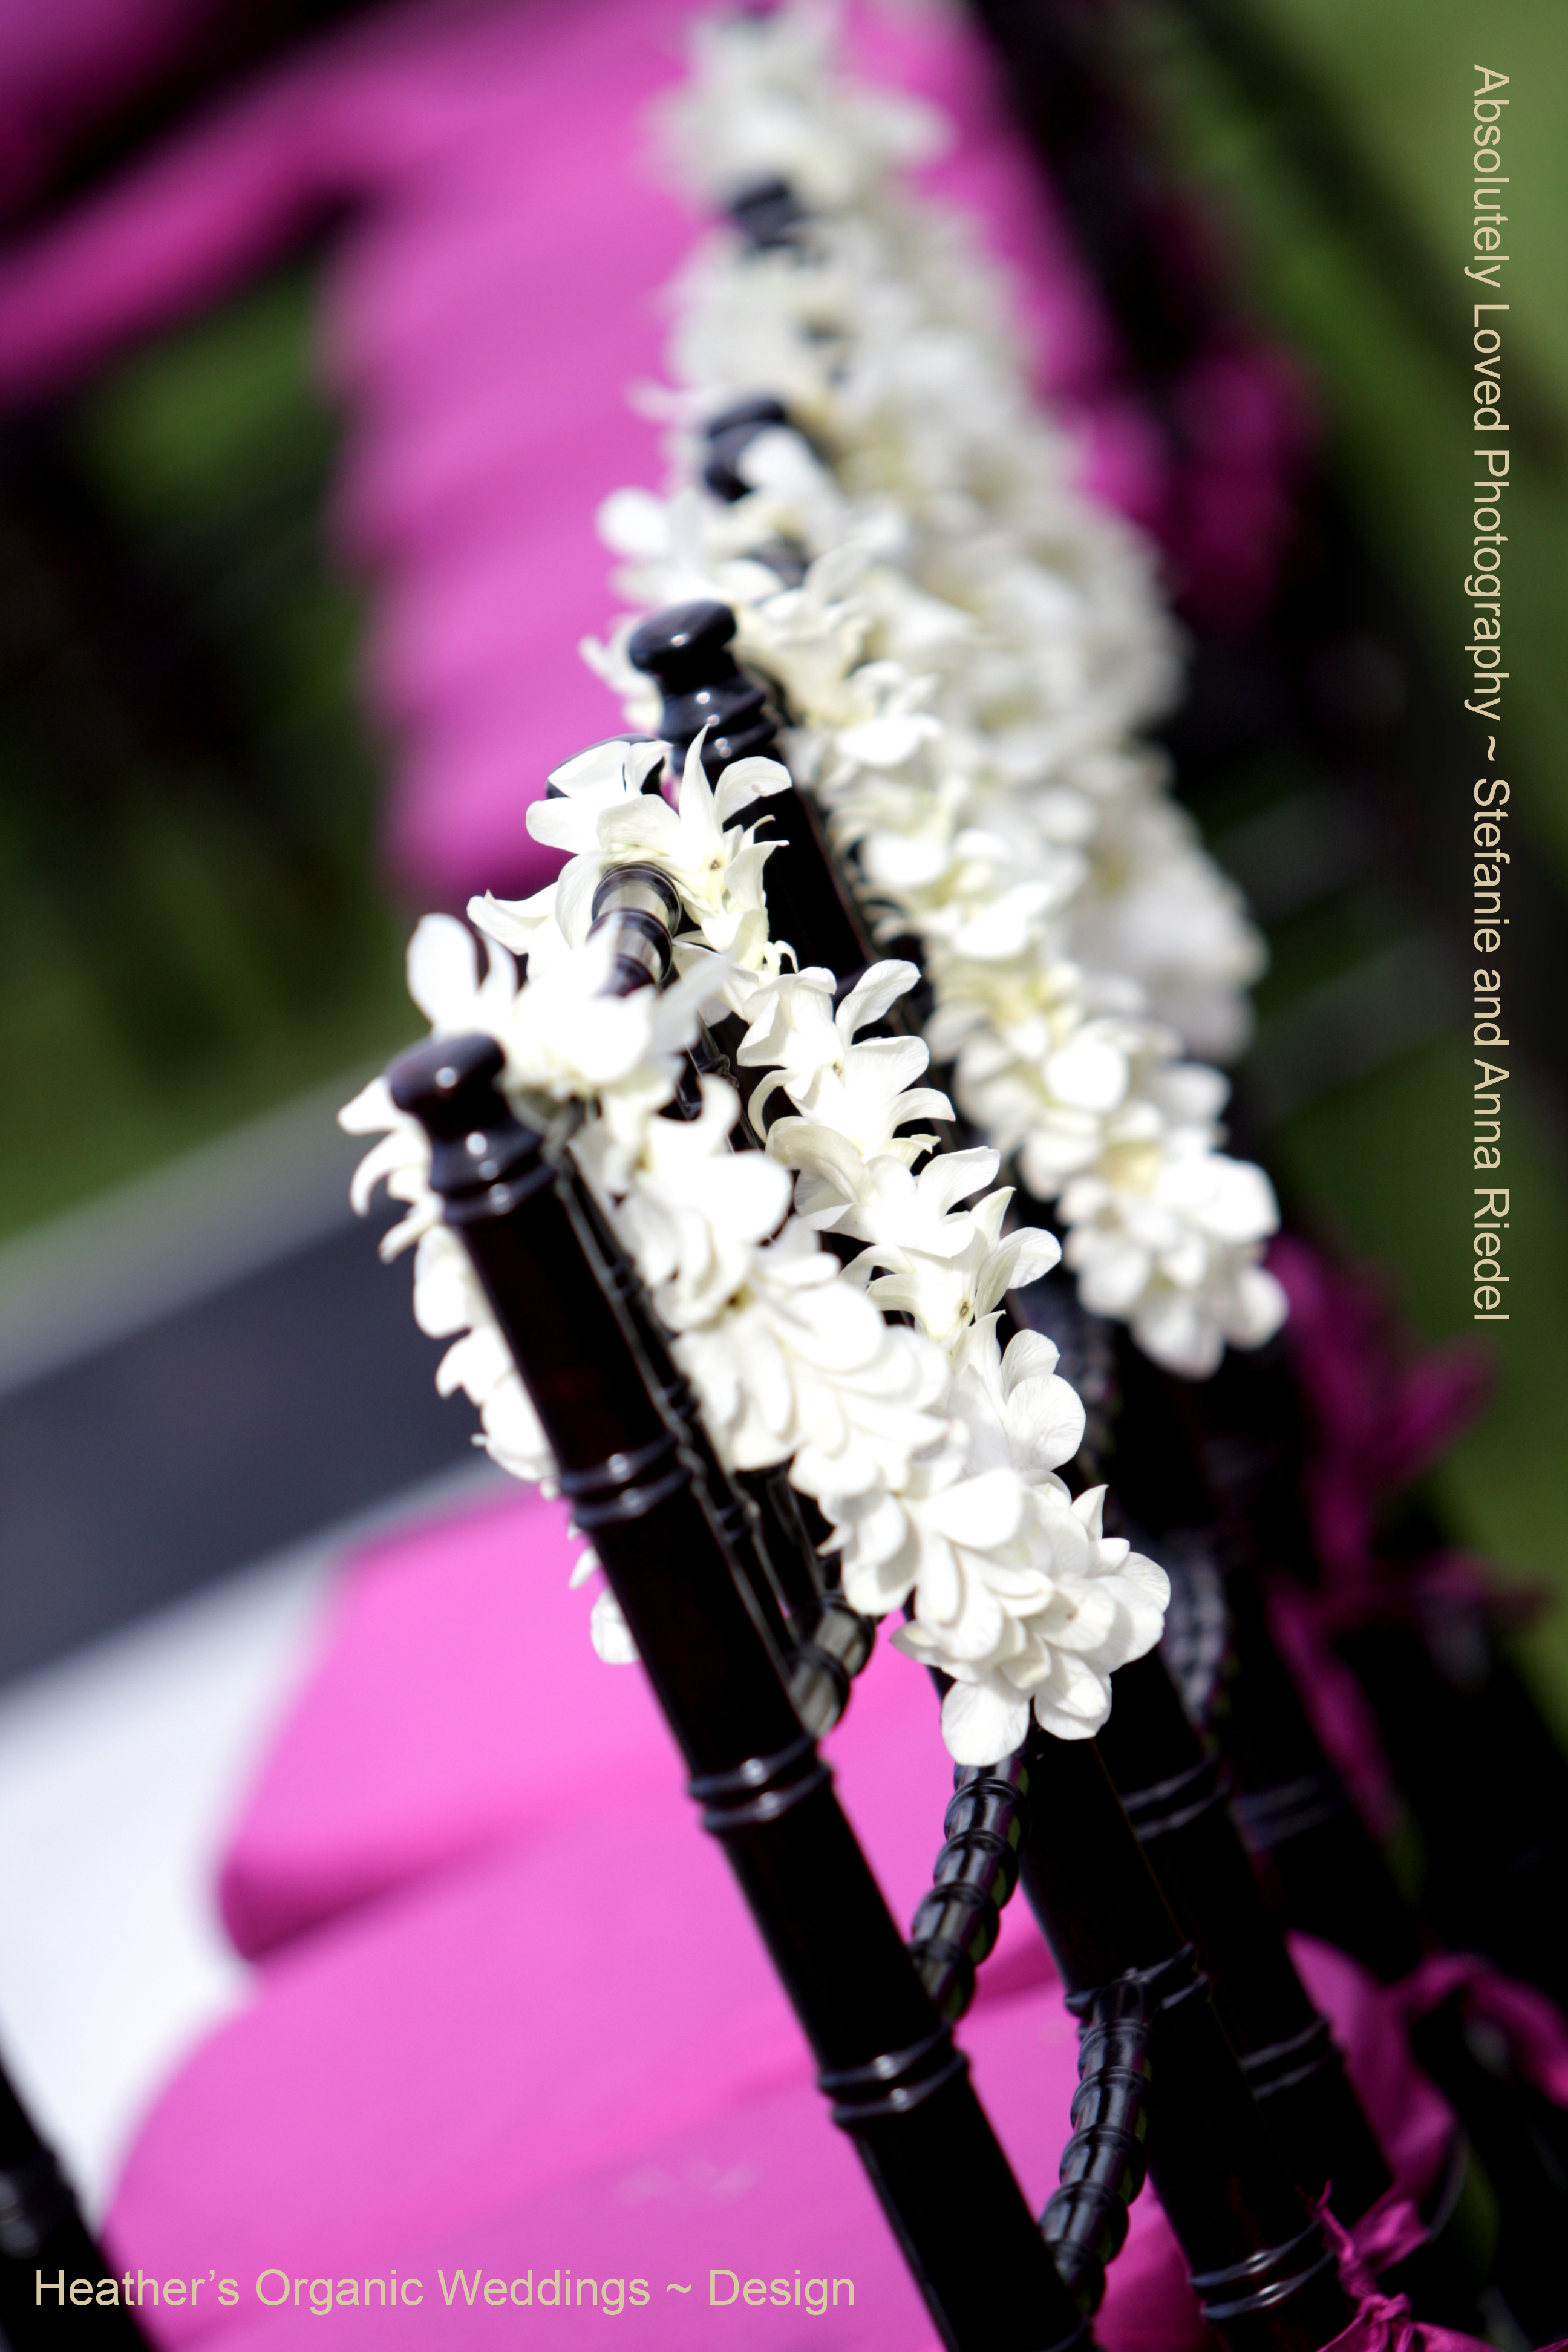 Ceremony, Reception, Flowers & Decor, Photography, purple, black, And, Anna, 808, Stefanie, Riedel, Wwwabsolutelylovedcom, Loved, Absolutely, 779, 1895